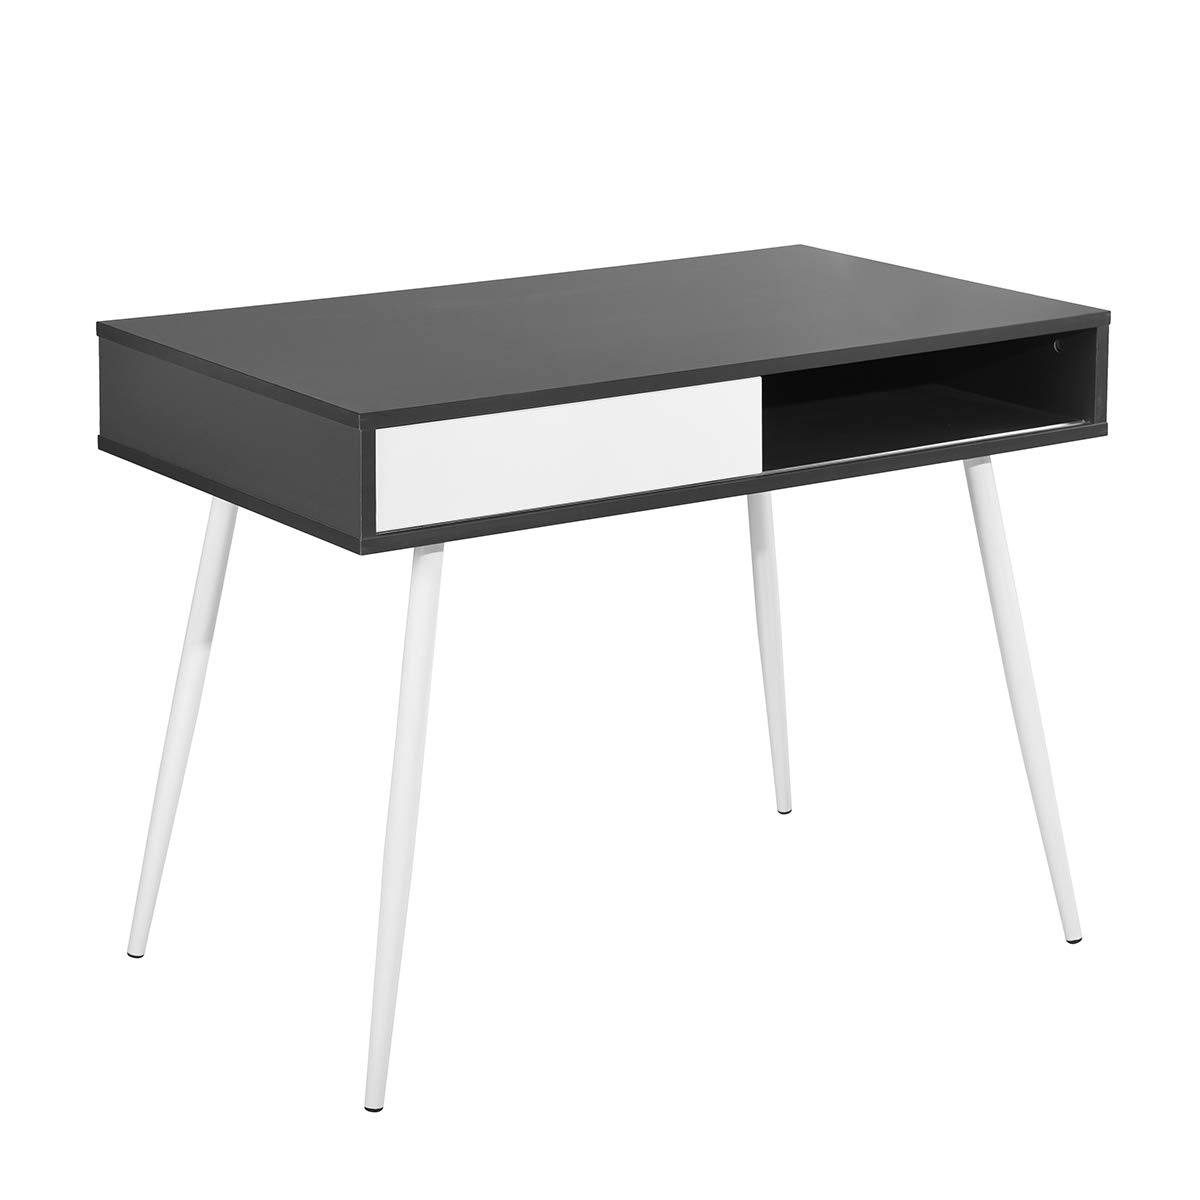 Ihouse Full Wood Task Sturdy Accent Home Office Computer Desk with Movable White Drawer (Black)